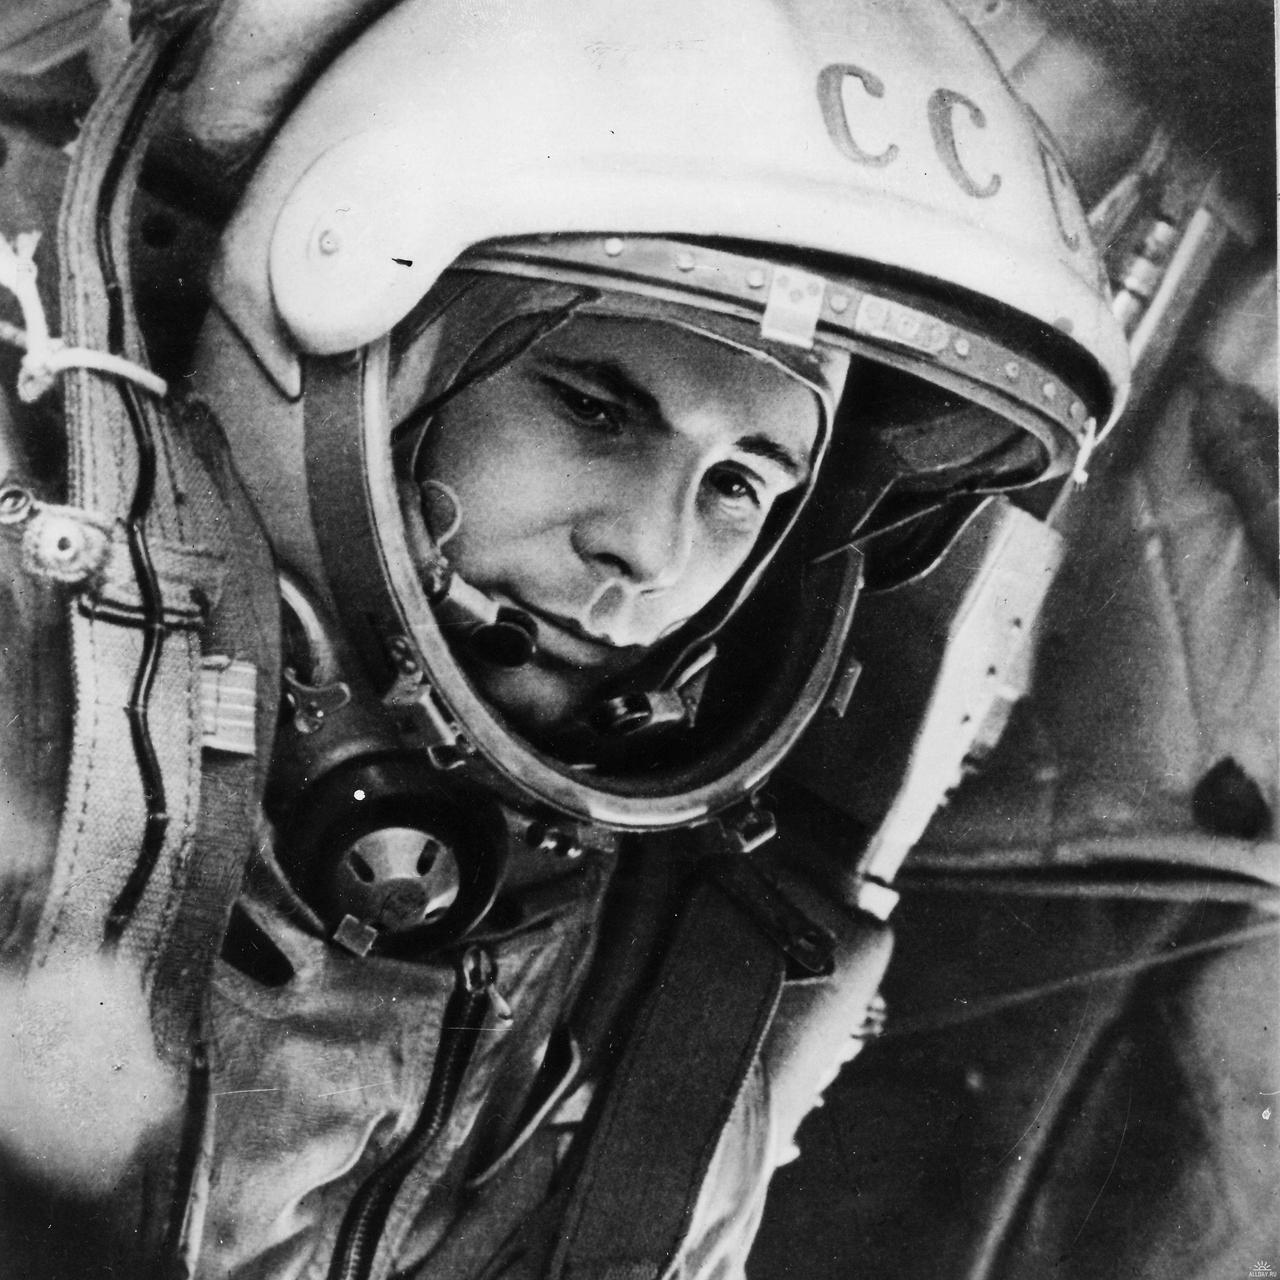 thekhooll:  The Columbus of The Cosmos Yuri Alekseyevich Gagarin was a Soviet pilot and cosmonaut. He was the first human to journey into outer space, when his Vostok spacecraft completed an orbit of the Earth on 12 April 1961.